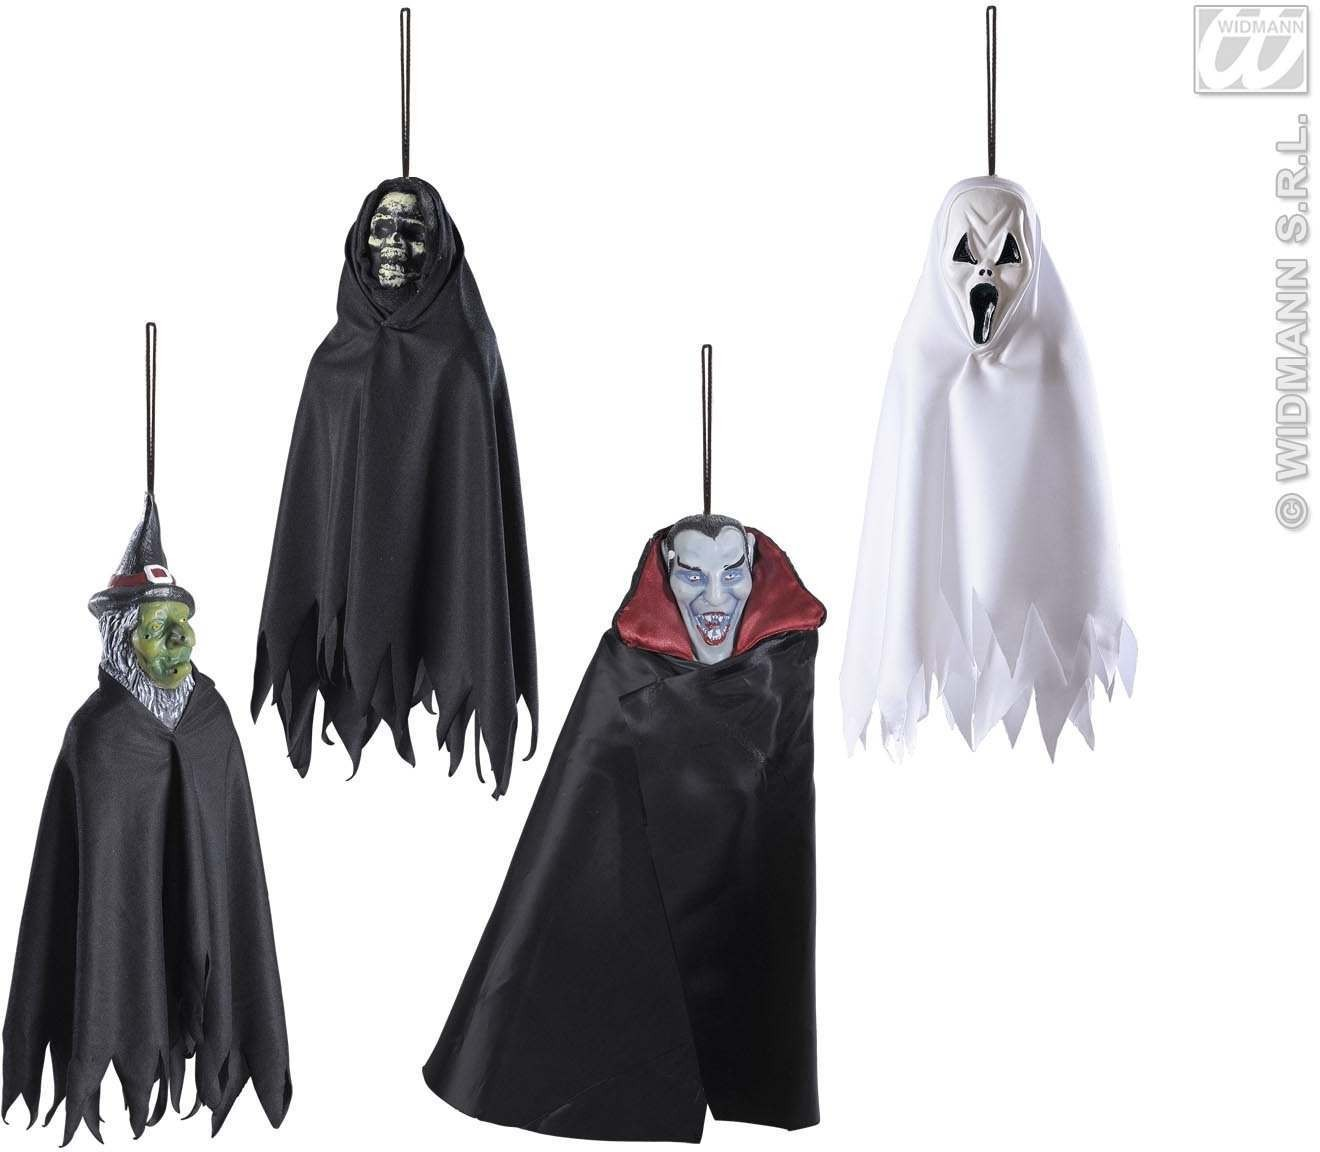 Hanging Scary Creatures 33Cm, 4 Styles Ass. Fancy Dress (Halloween)